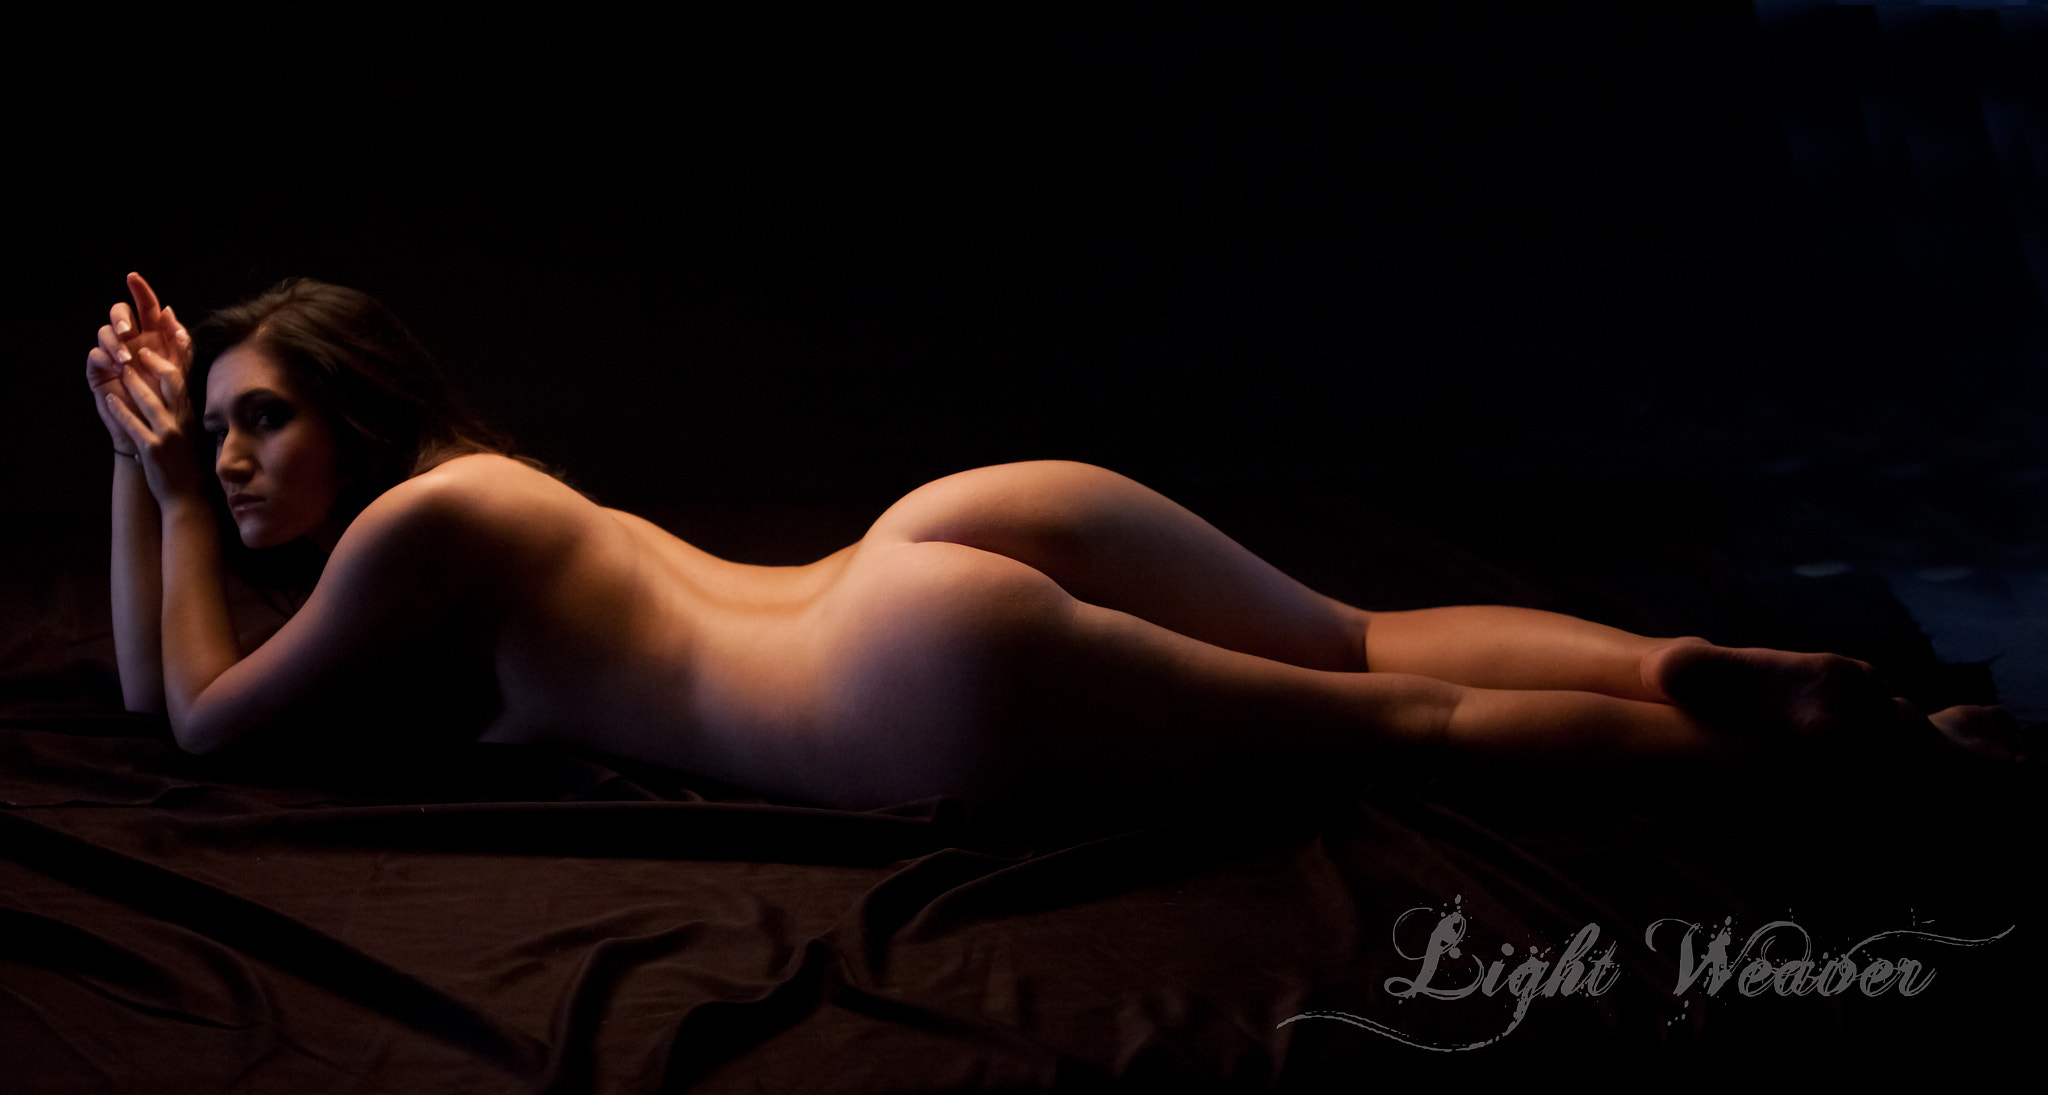 Photograph Bodyscape by Frank Schenk on 500px